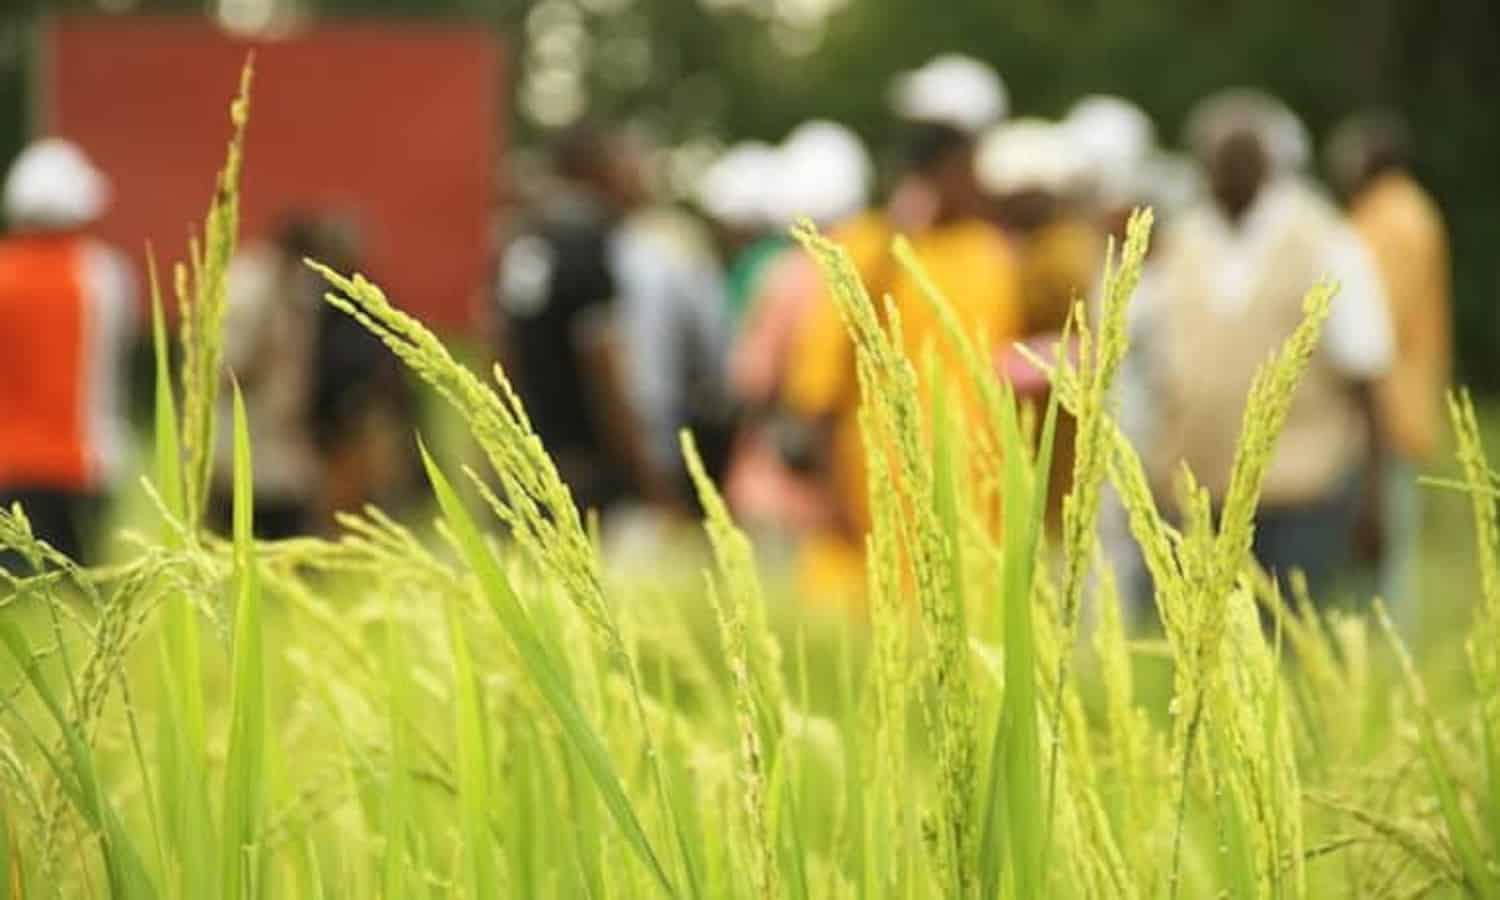 Here's an interesting article about how the System of Rice Intensification (SRI) is helping farmers in Mali deal with climate change.